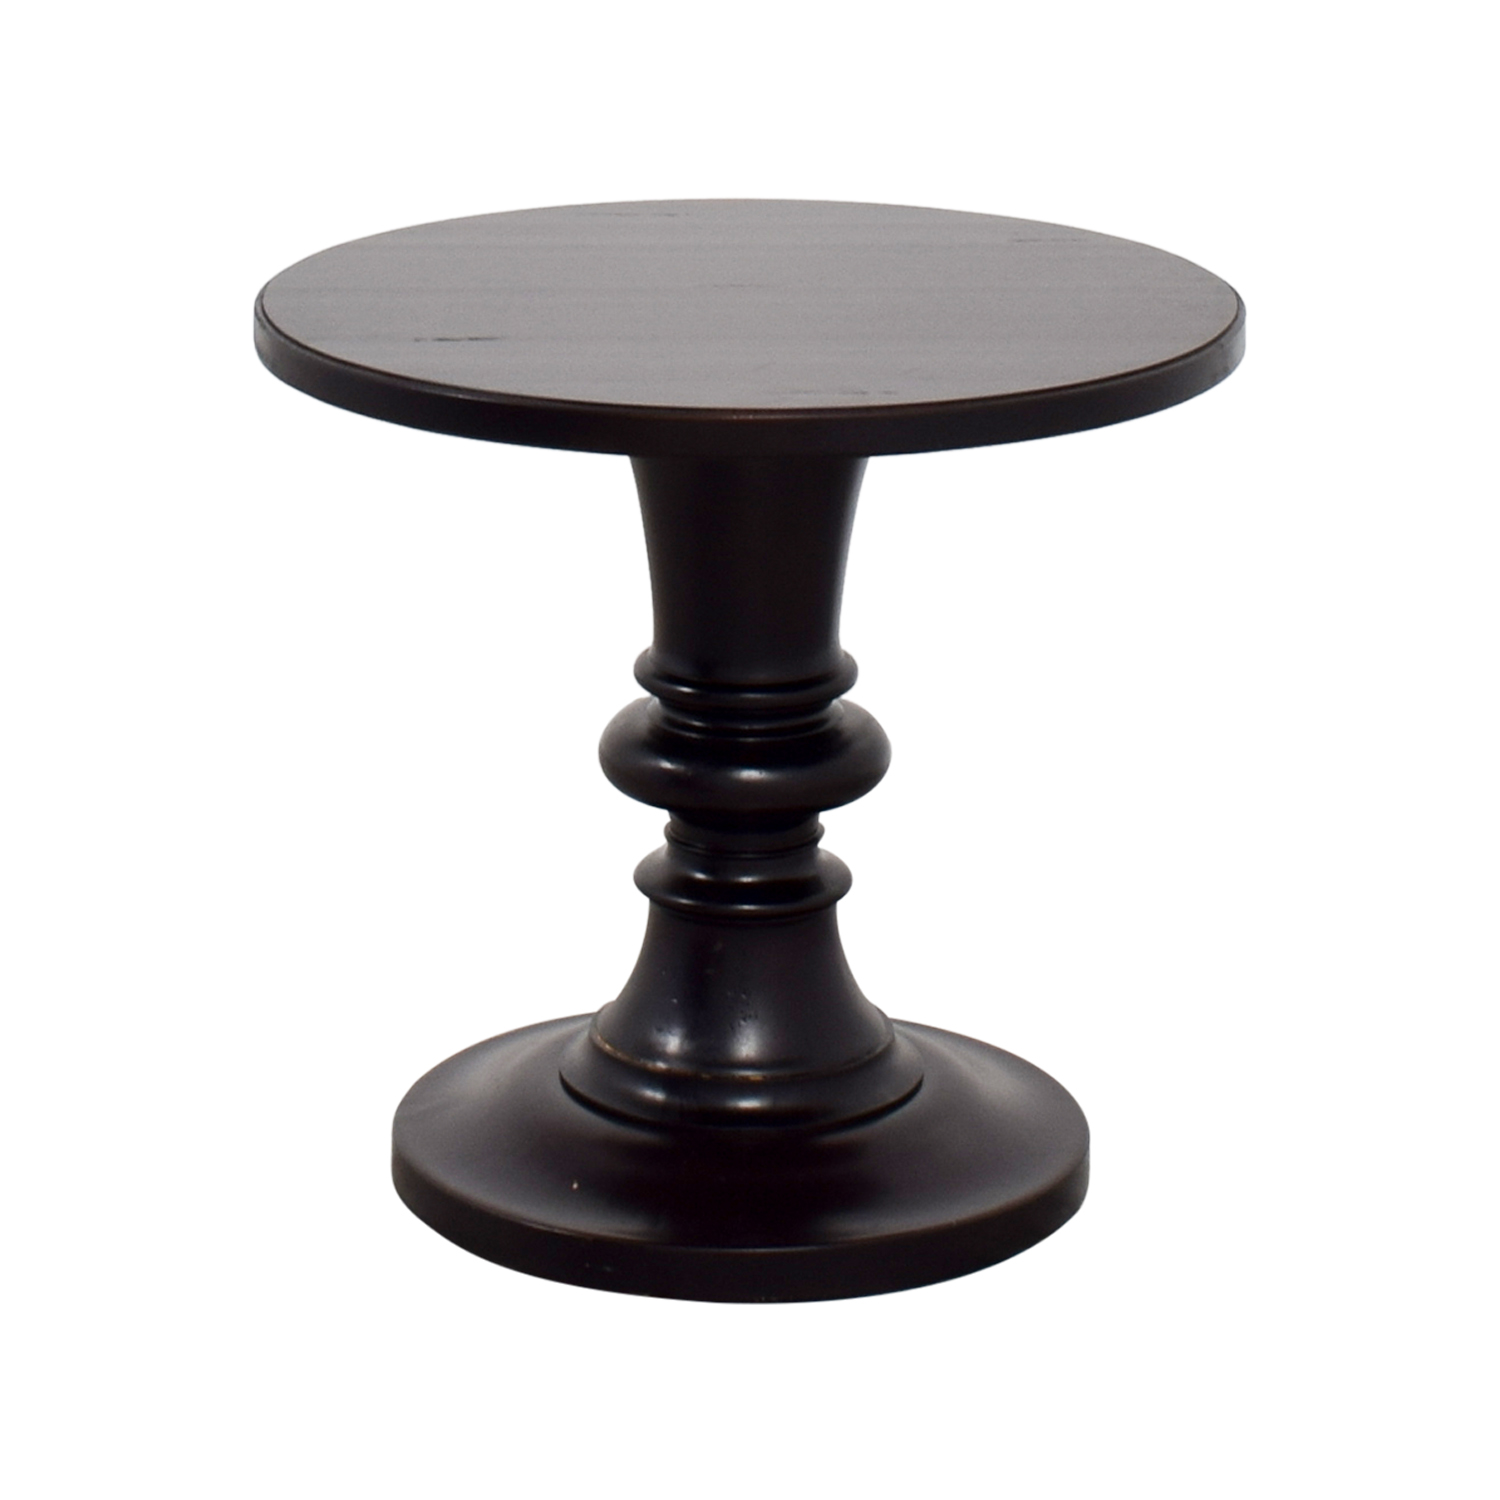 ... Buy Pottery Barn Pottery Barn Rustic Pedestal Accent Table Online ...